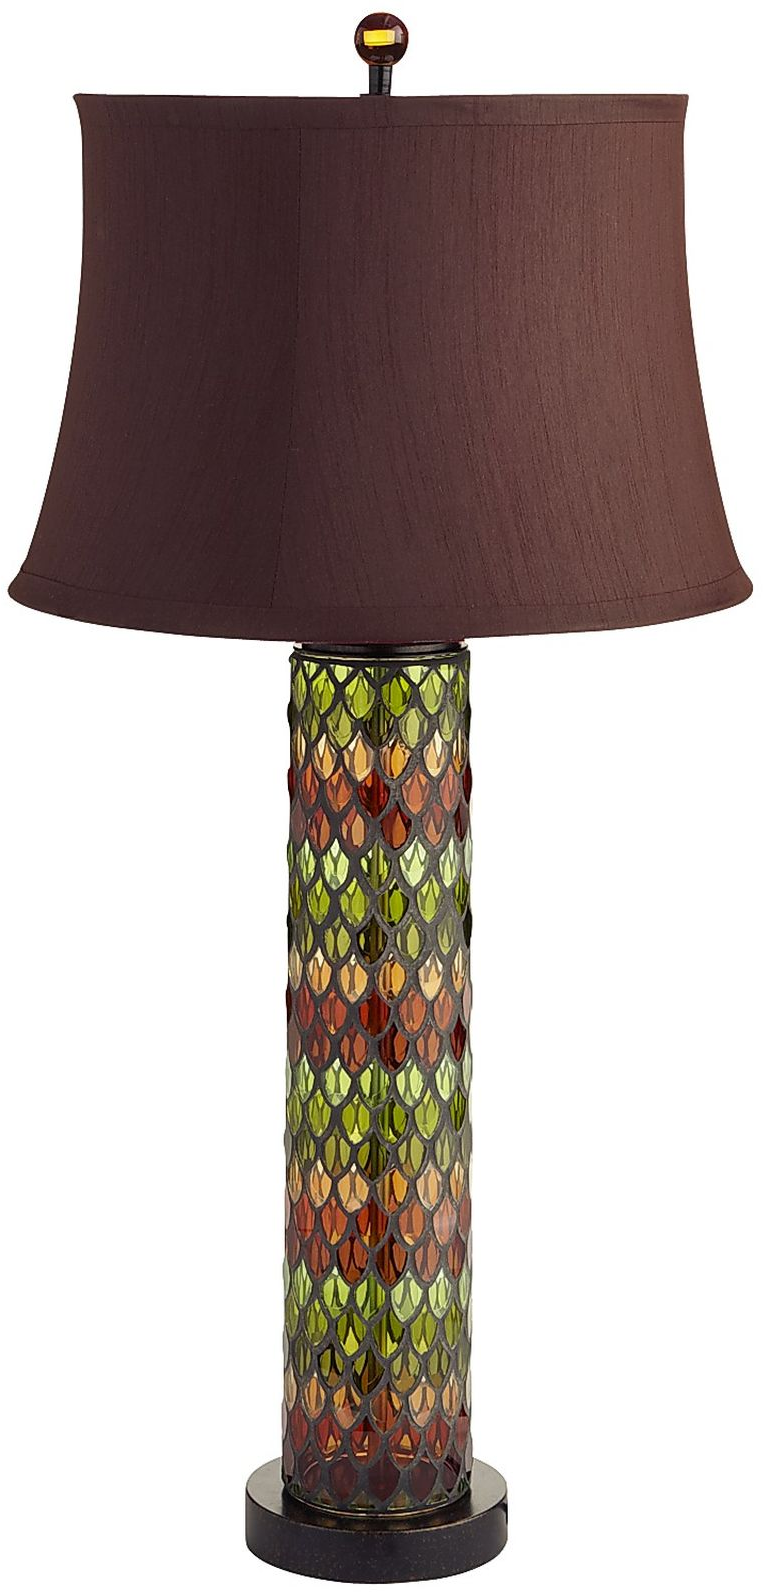 Cathedral Lamp | Pier 1 Imports